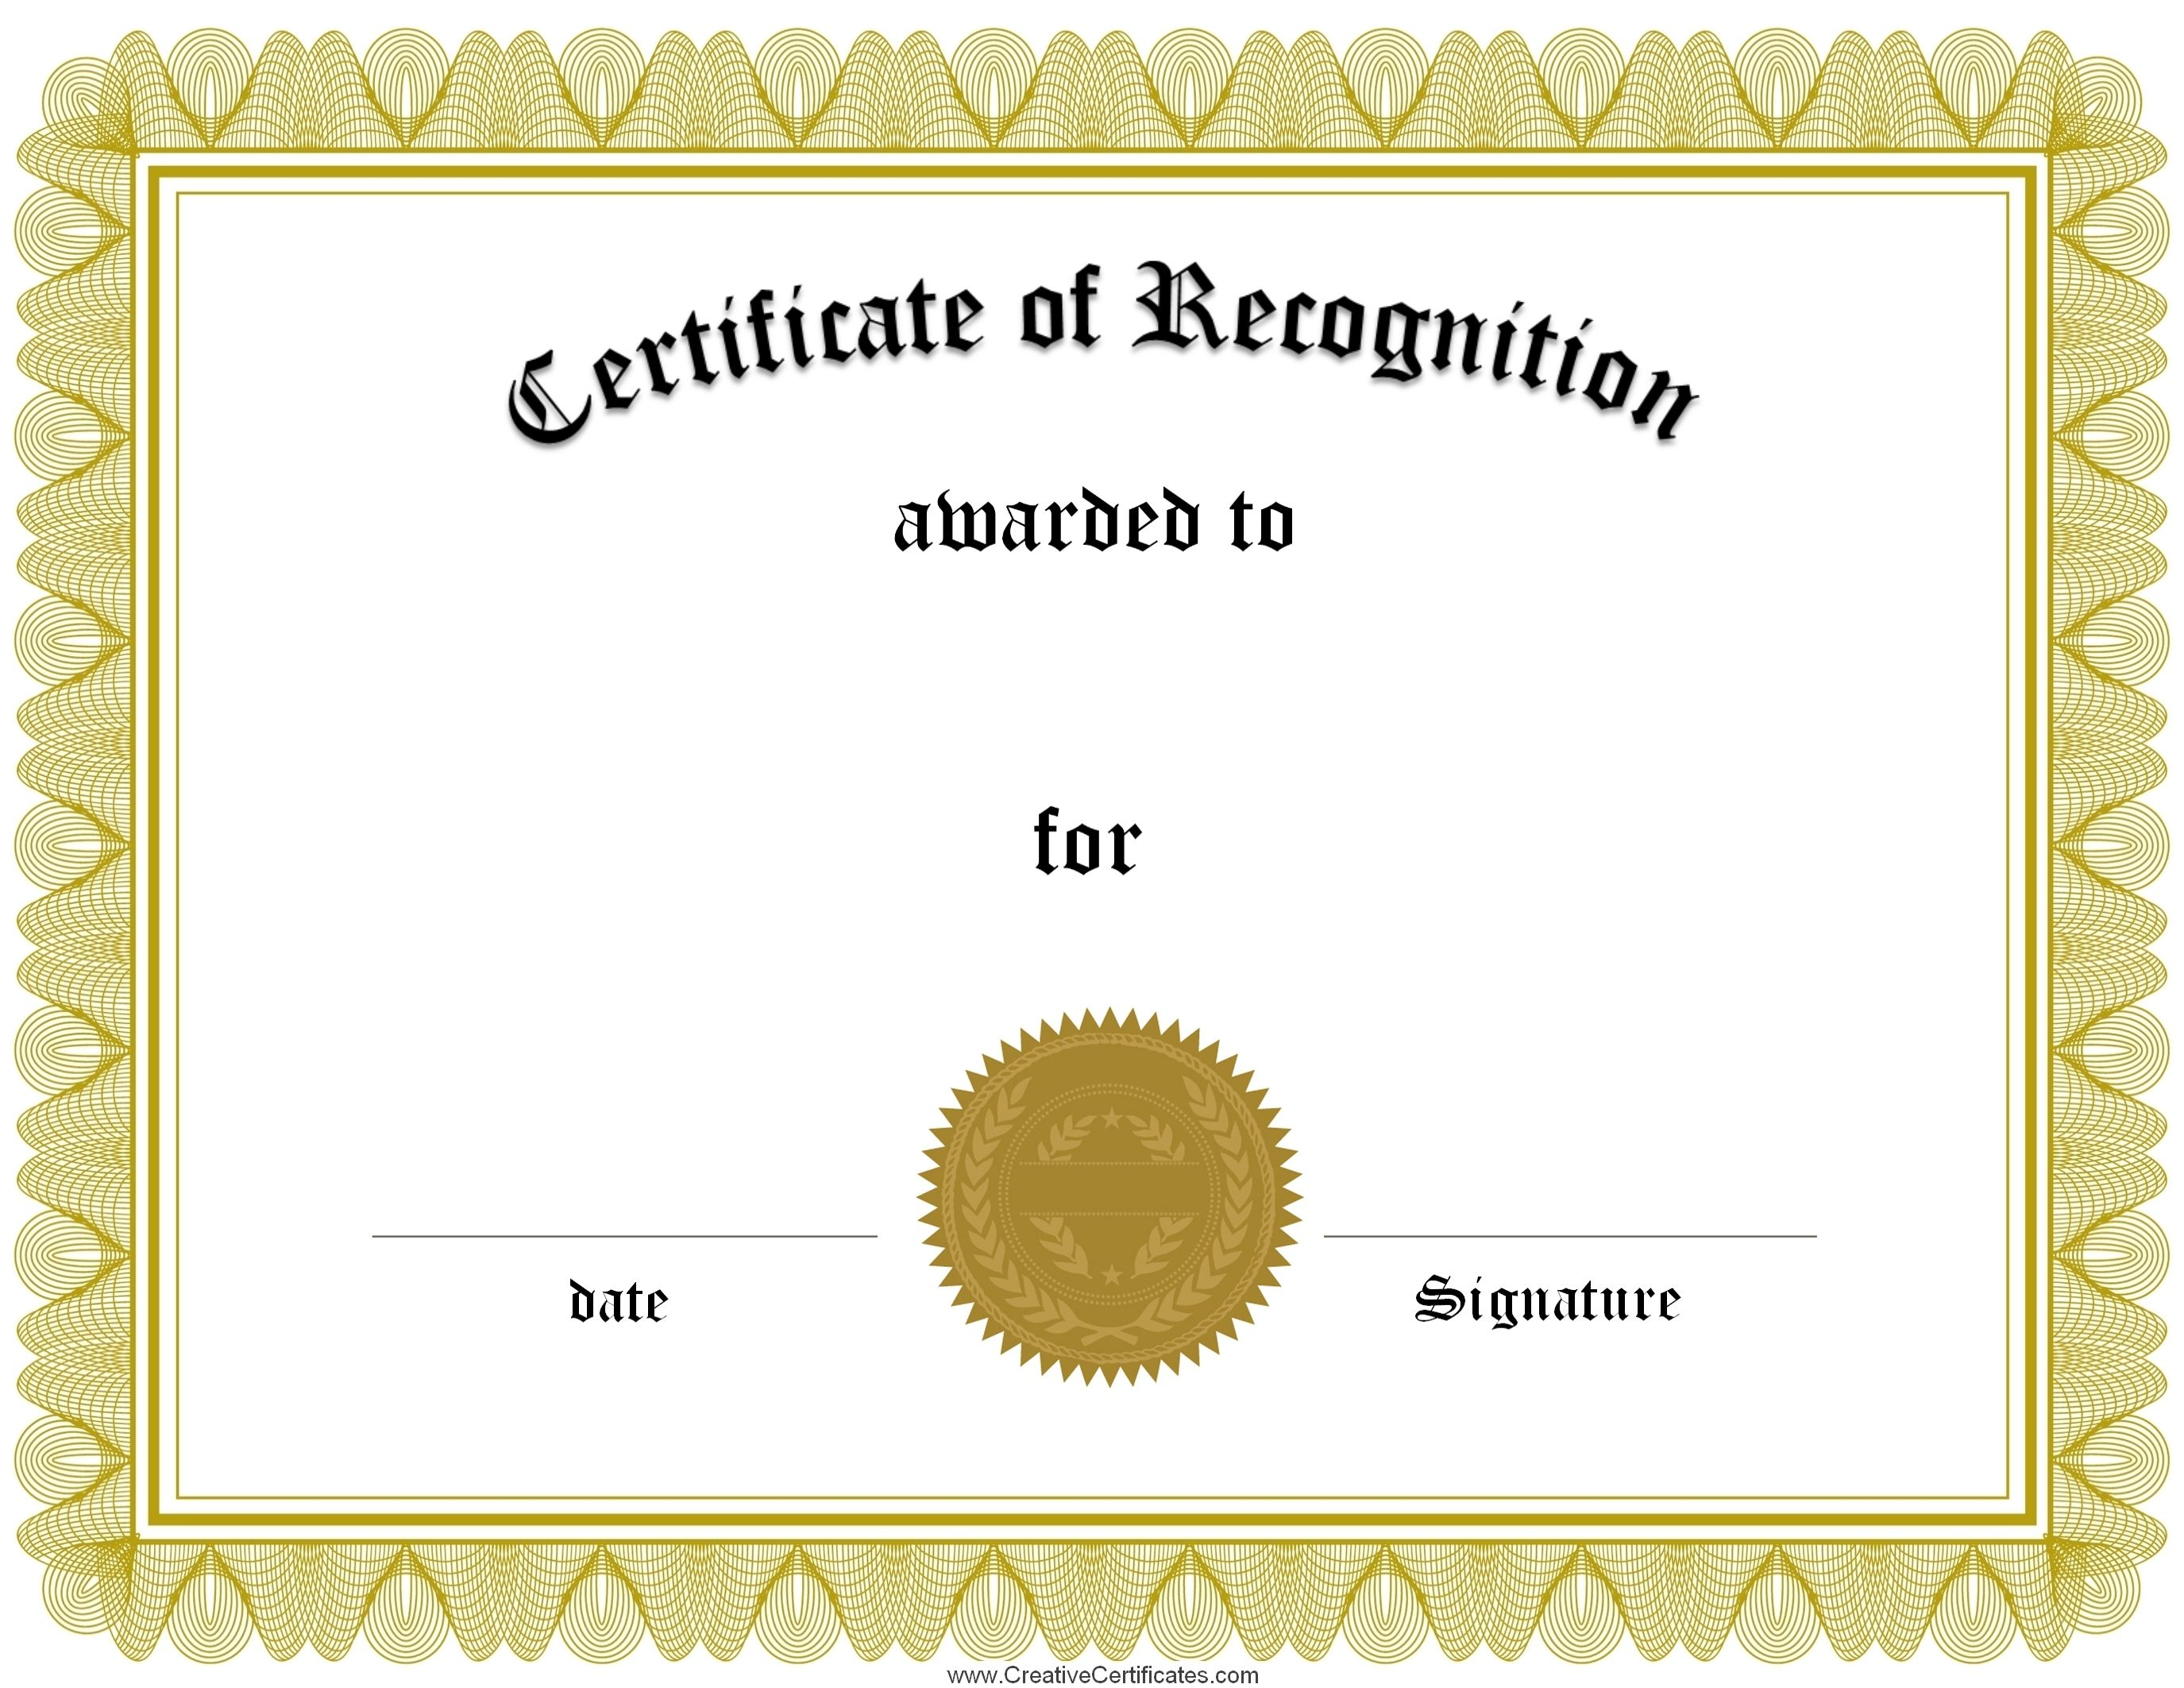 Recognition award certificate templates gidiyedformapolitica recognition award certificate templates yadclub Choice Image